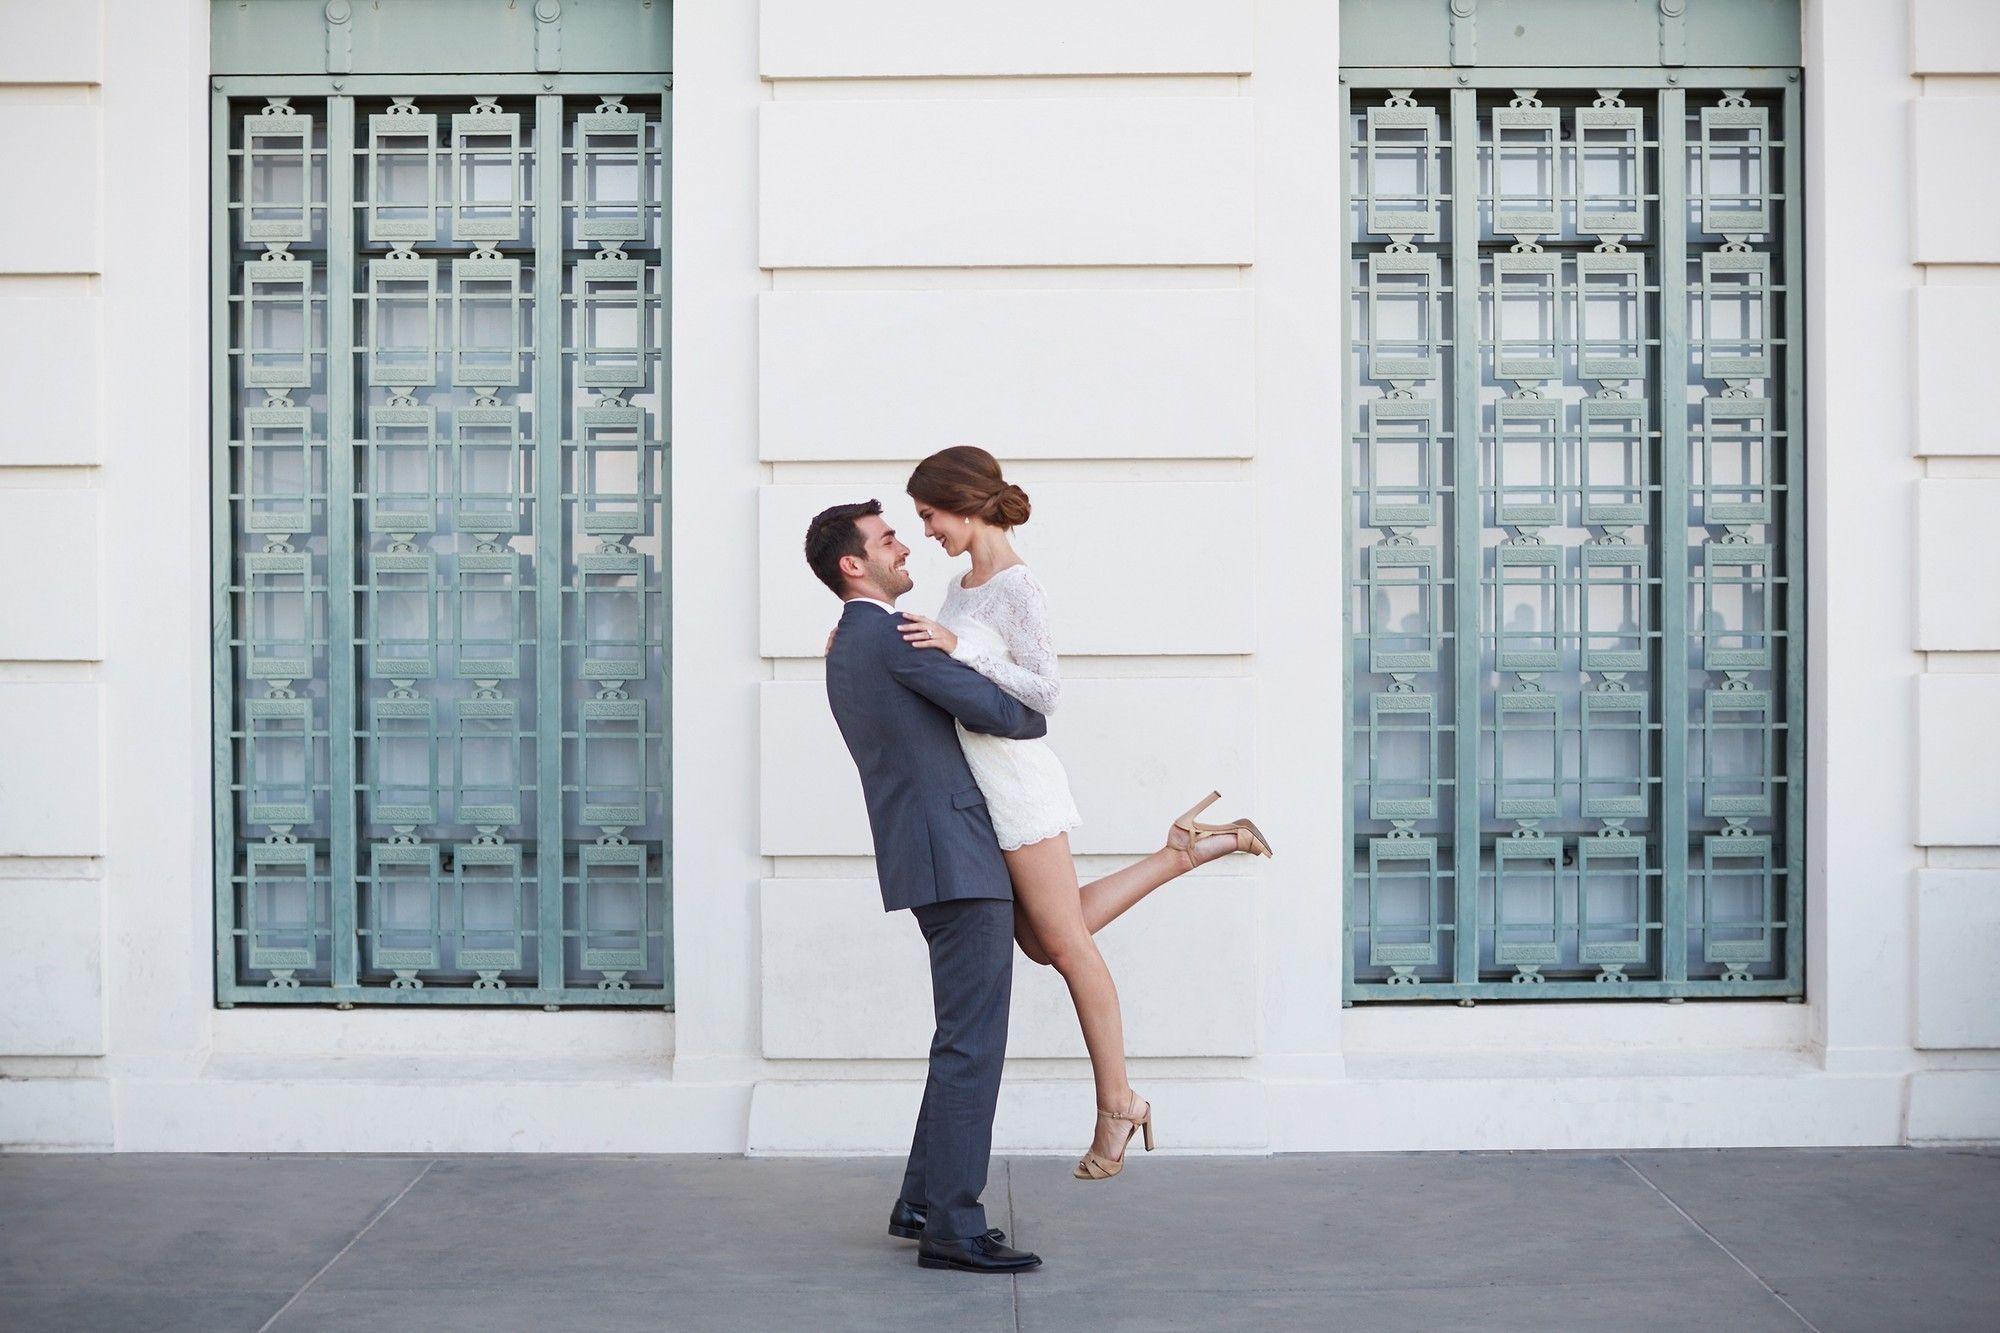 Tappeto Erboso Online The Perfect Engagement Shoot With The Bridal Romper Prato By